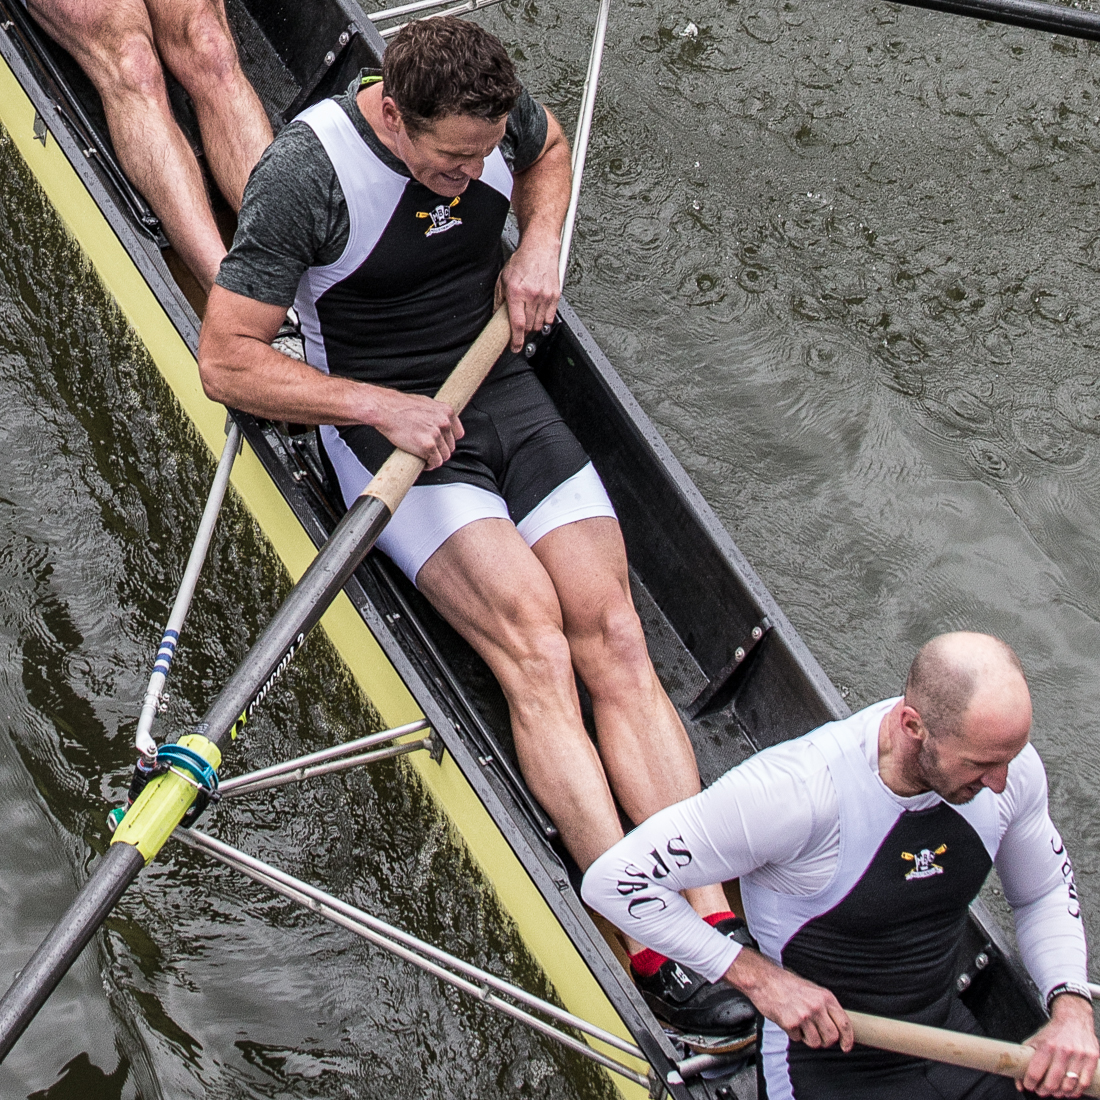 WEROW vets head 0023 - Veterans Head: Bradley Wiggins makes his Tideway rowing debut